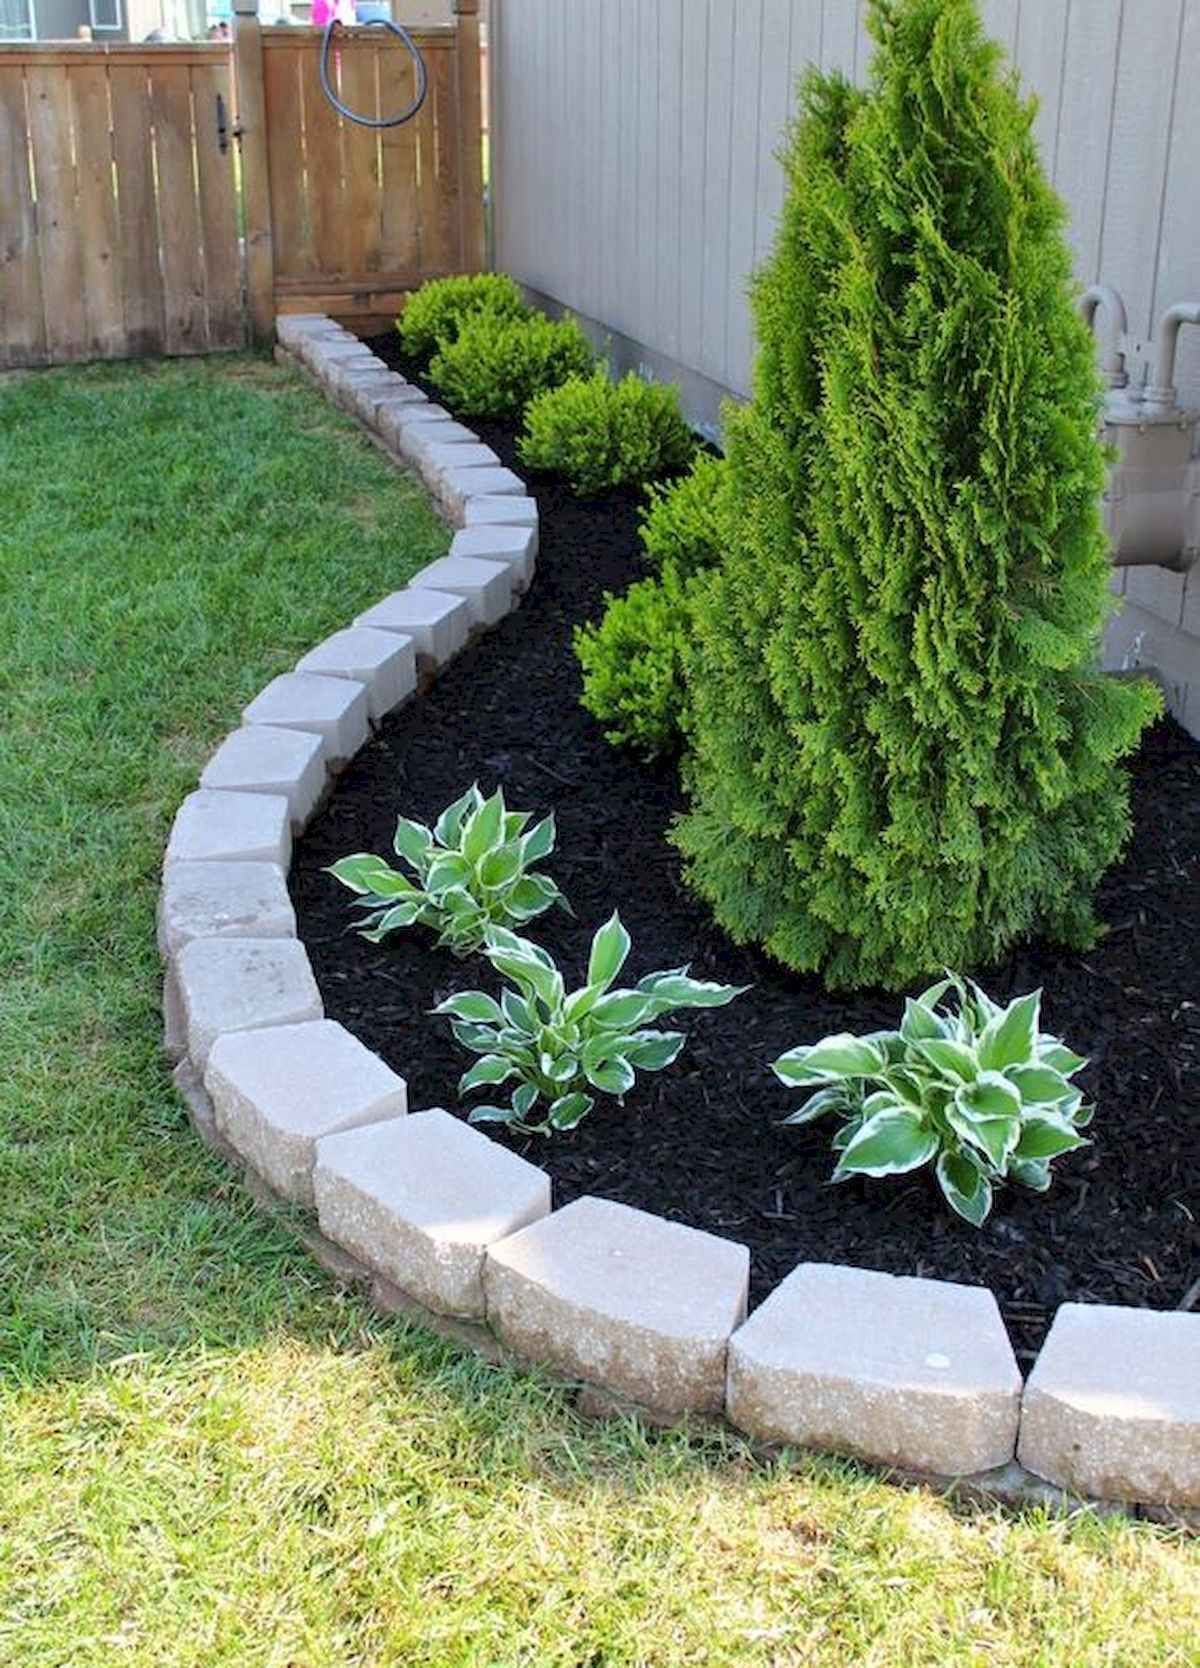 90 Simple And Beautiful Front Yard Landscaping Ideas On A Budget 41 The Front Yard Is All Ab Front Yard Landscaping Design Easy Landscaping Front Yard Garden